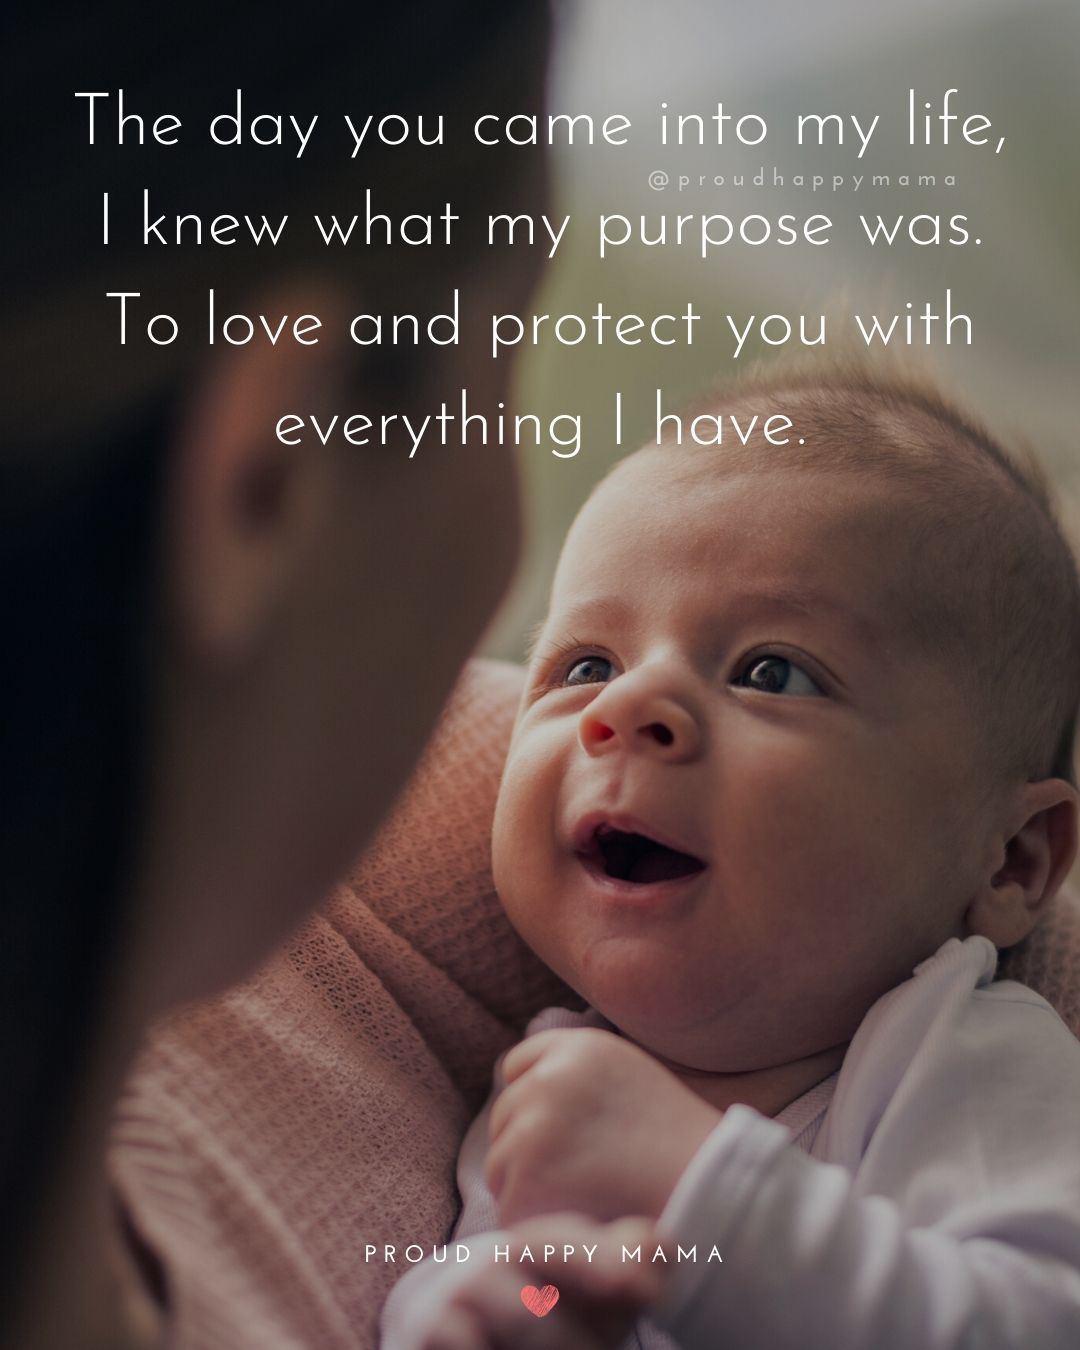 55 Sweet New Baby Quotes And Sayings With Images In 2020 Baby Quotes New Baby Quotes Newborn Quotes